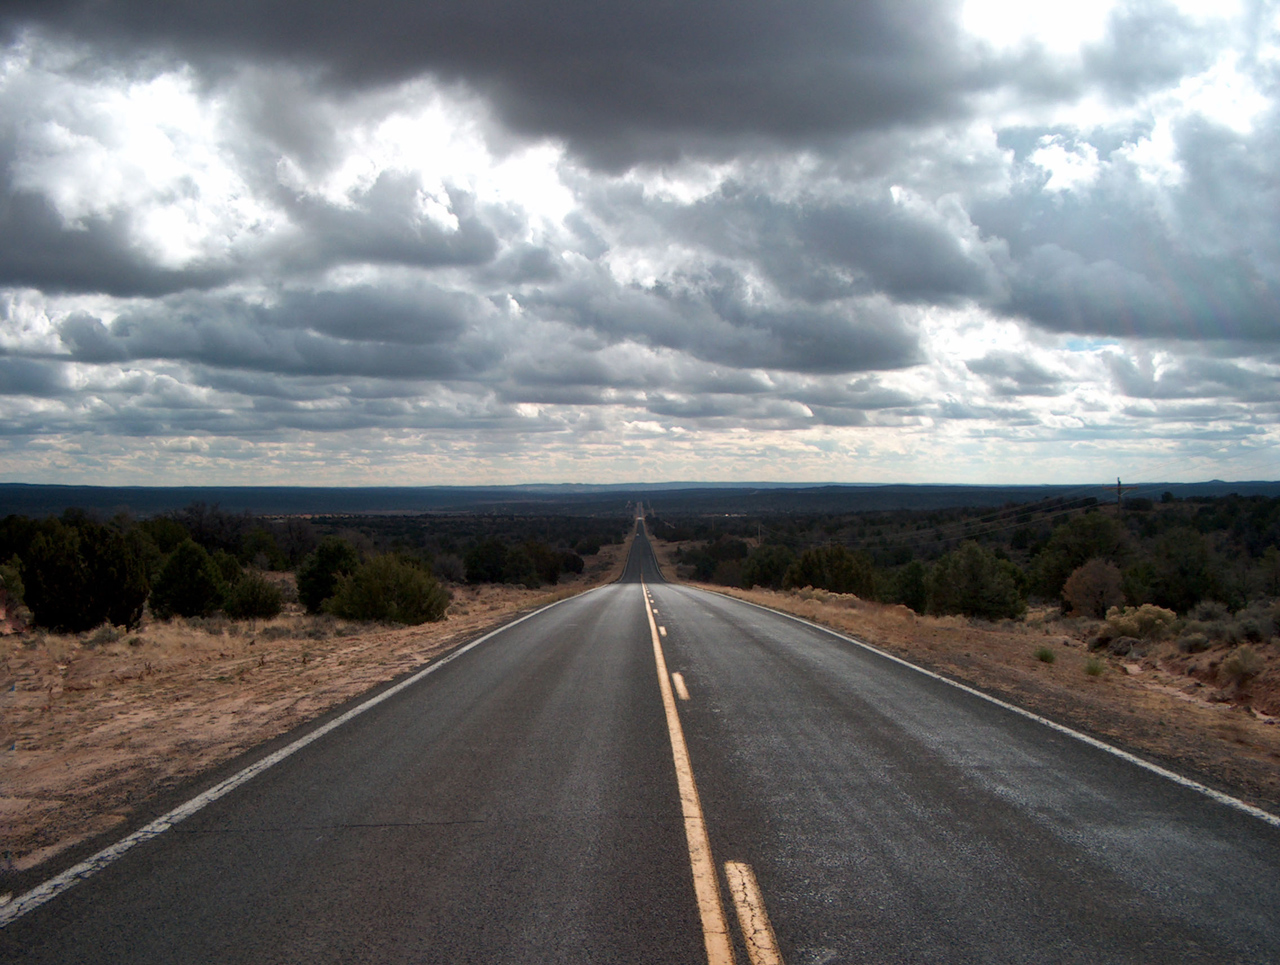 Lonely Highway During Long Distance Towing Service Job